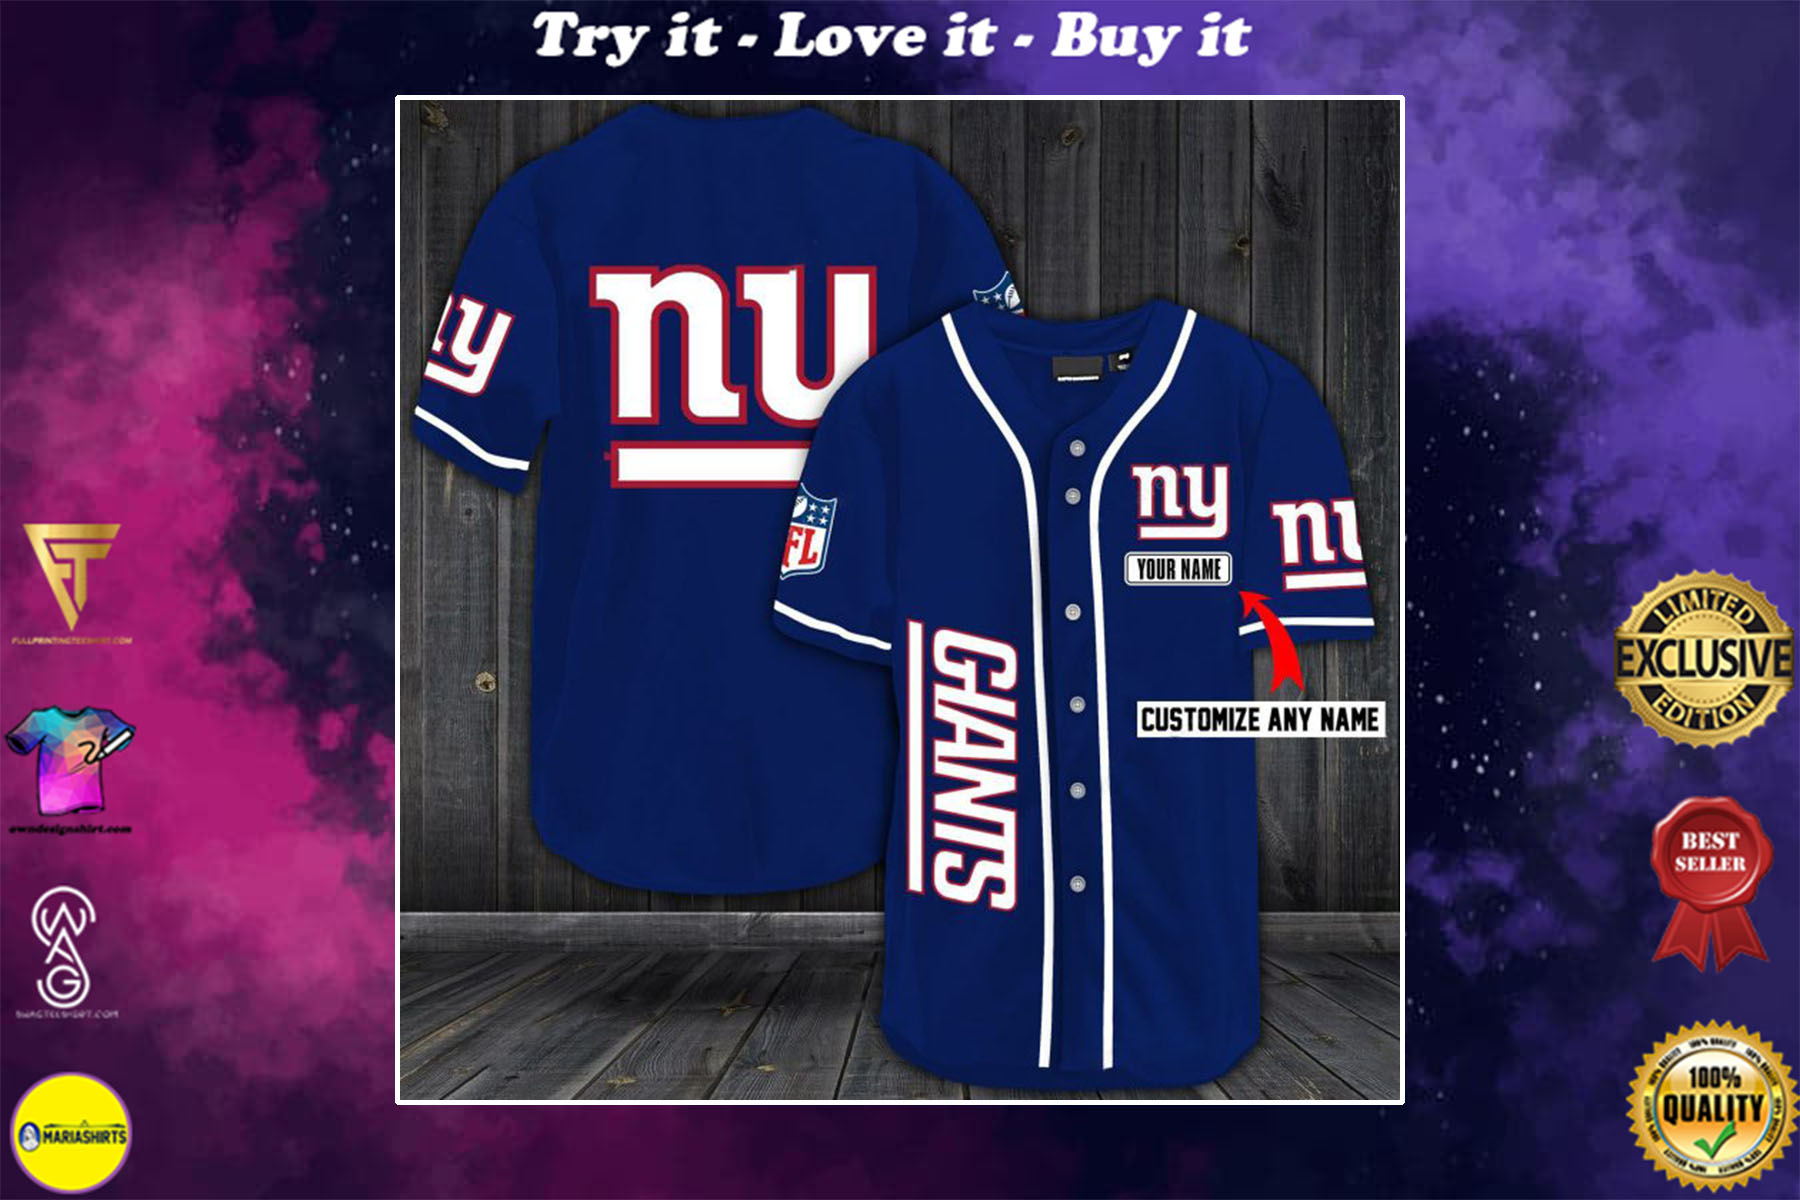 [special edition] personalized name jersey new york giants shirt - maria